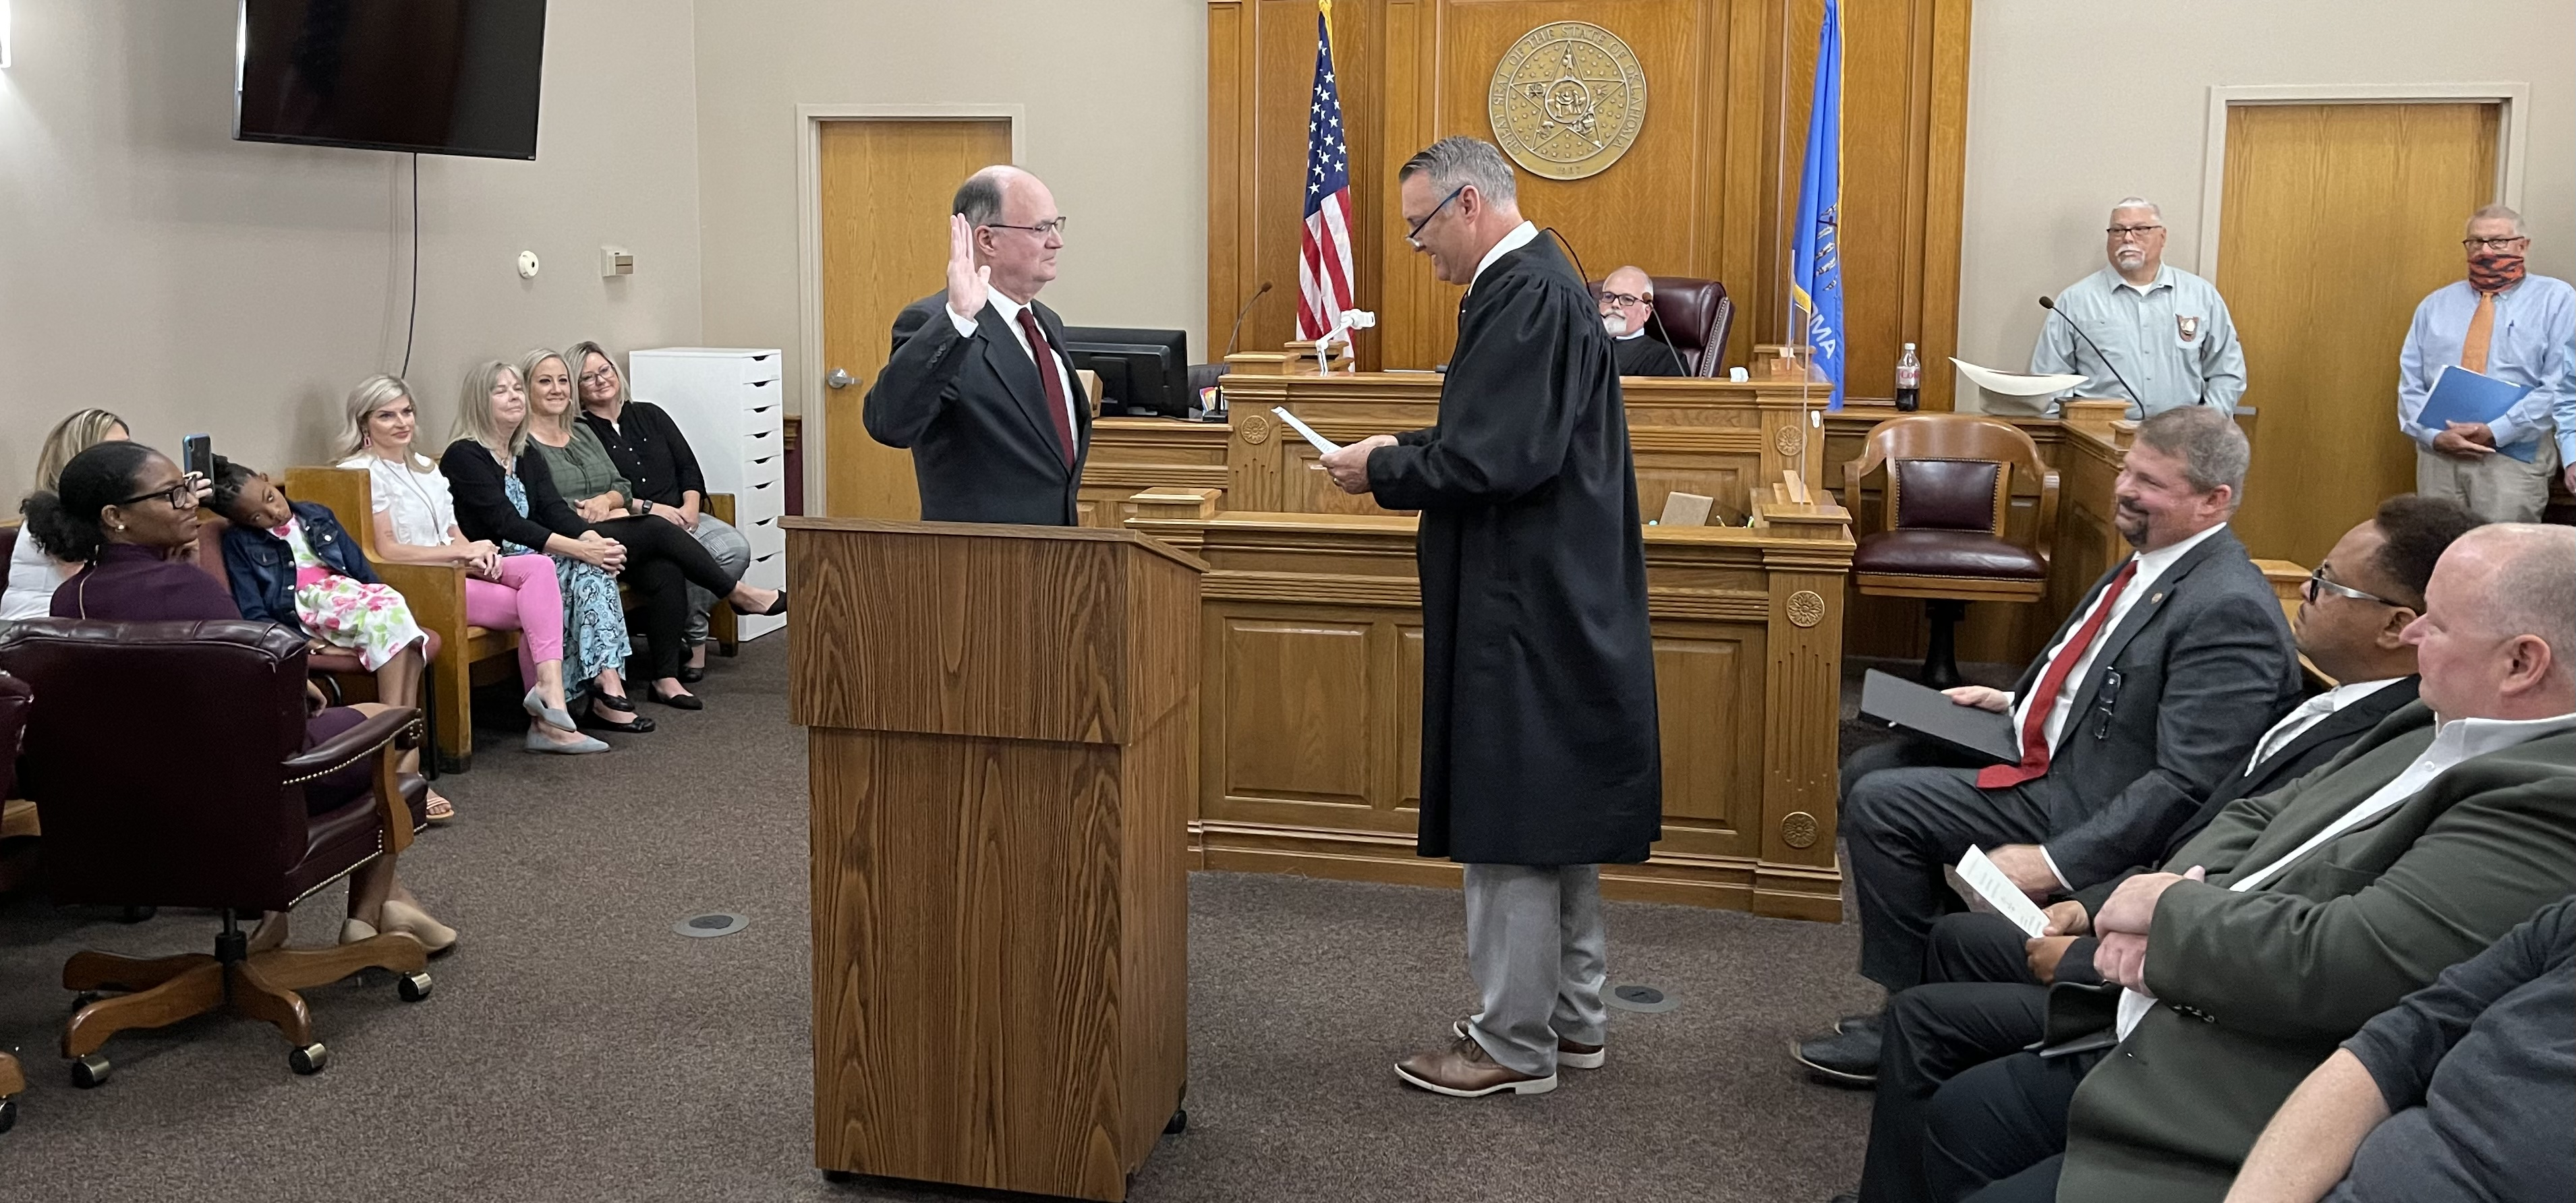 Former District Attorney and now Special District Judge Orvil Loge swears in his replacement, Larry Edwards as District Judge Bret Smith presides.